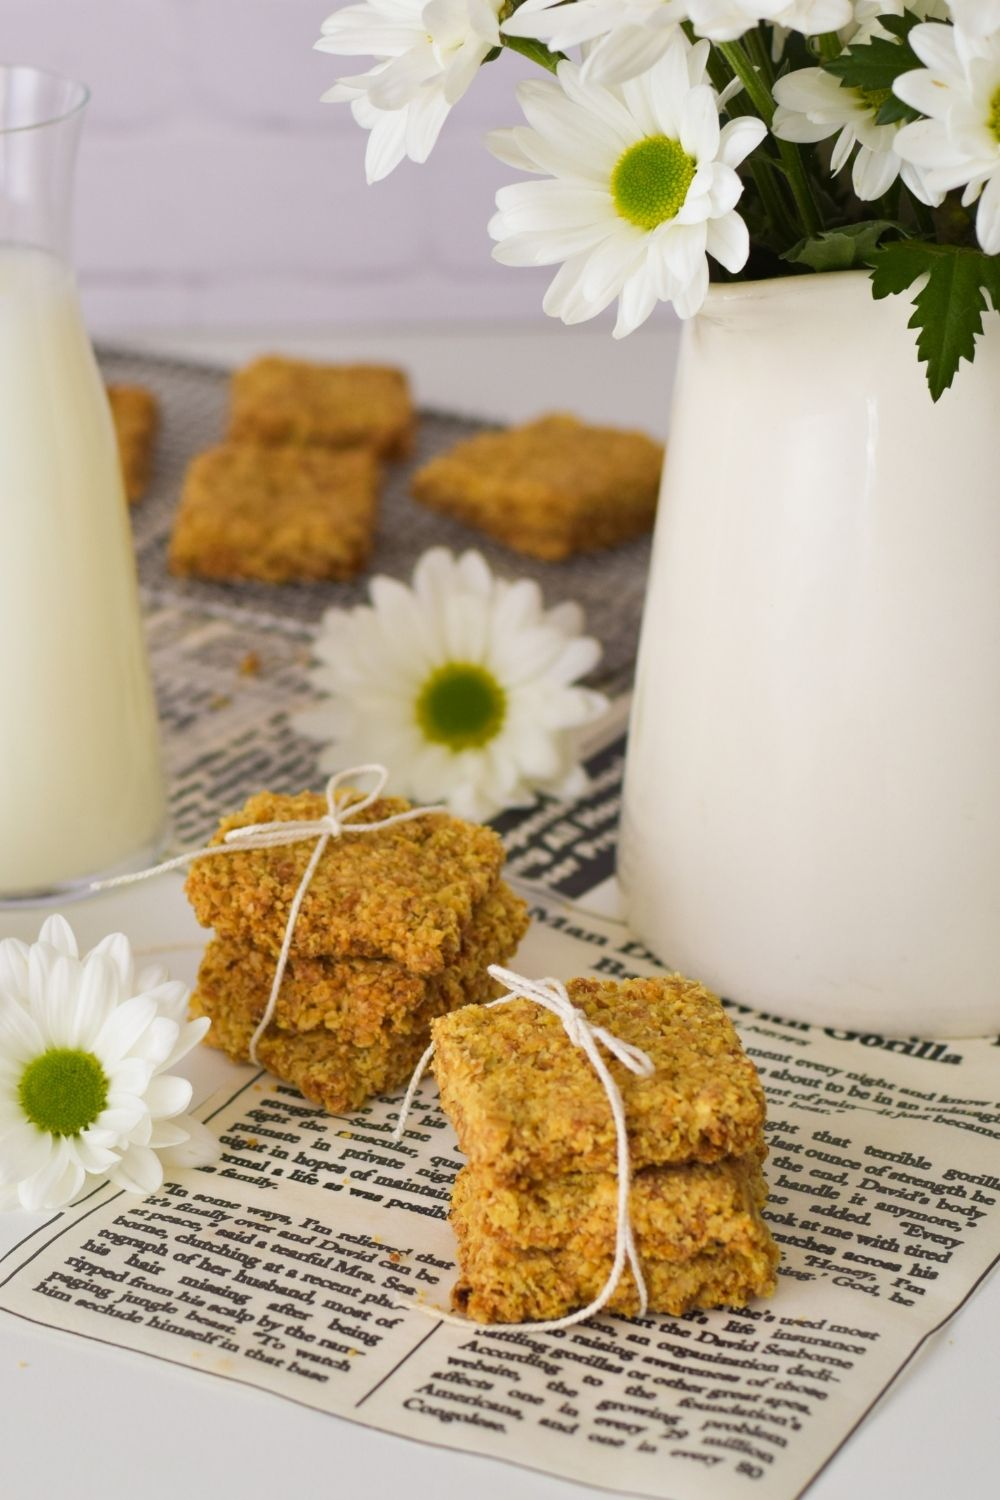 Oat Crunchies tied with string with flowers and a vase on the right